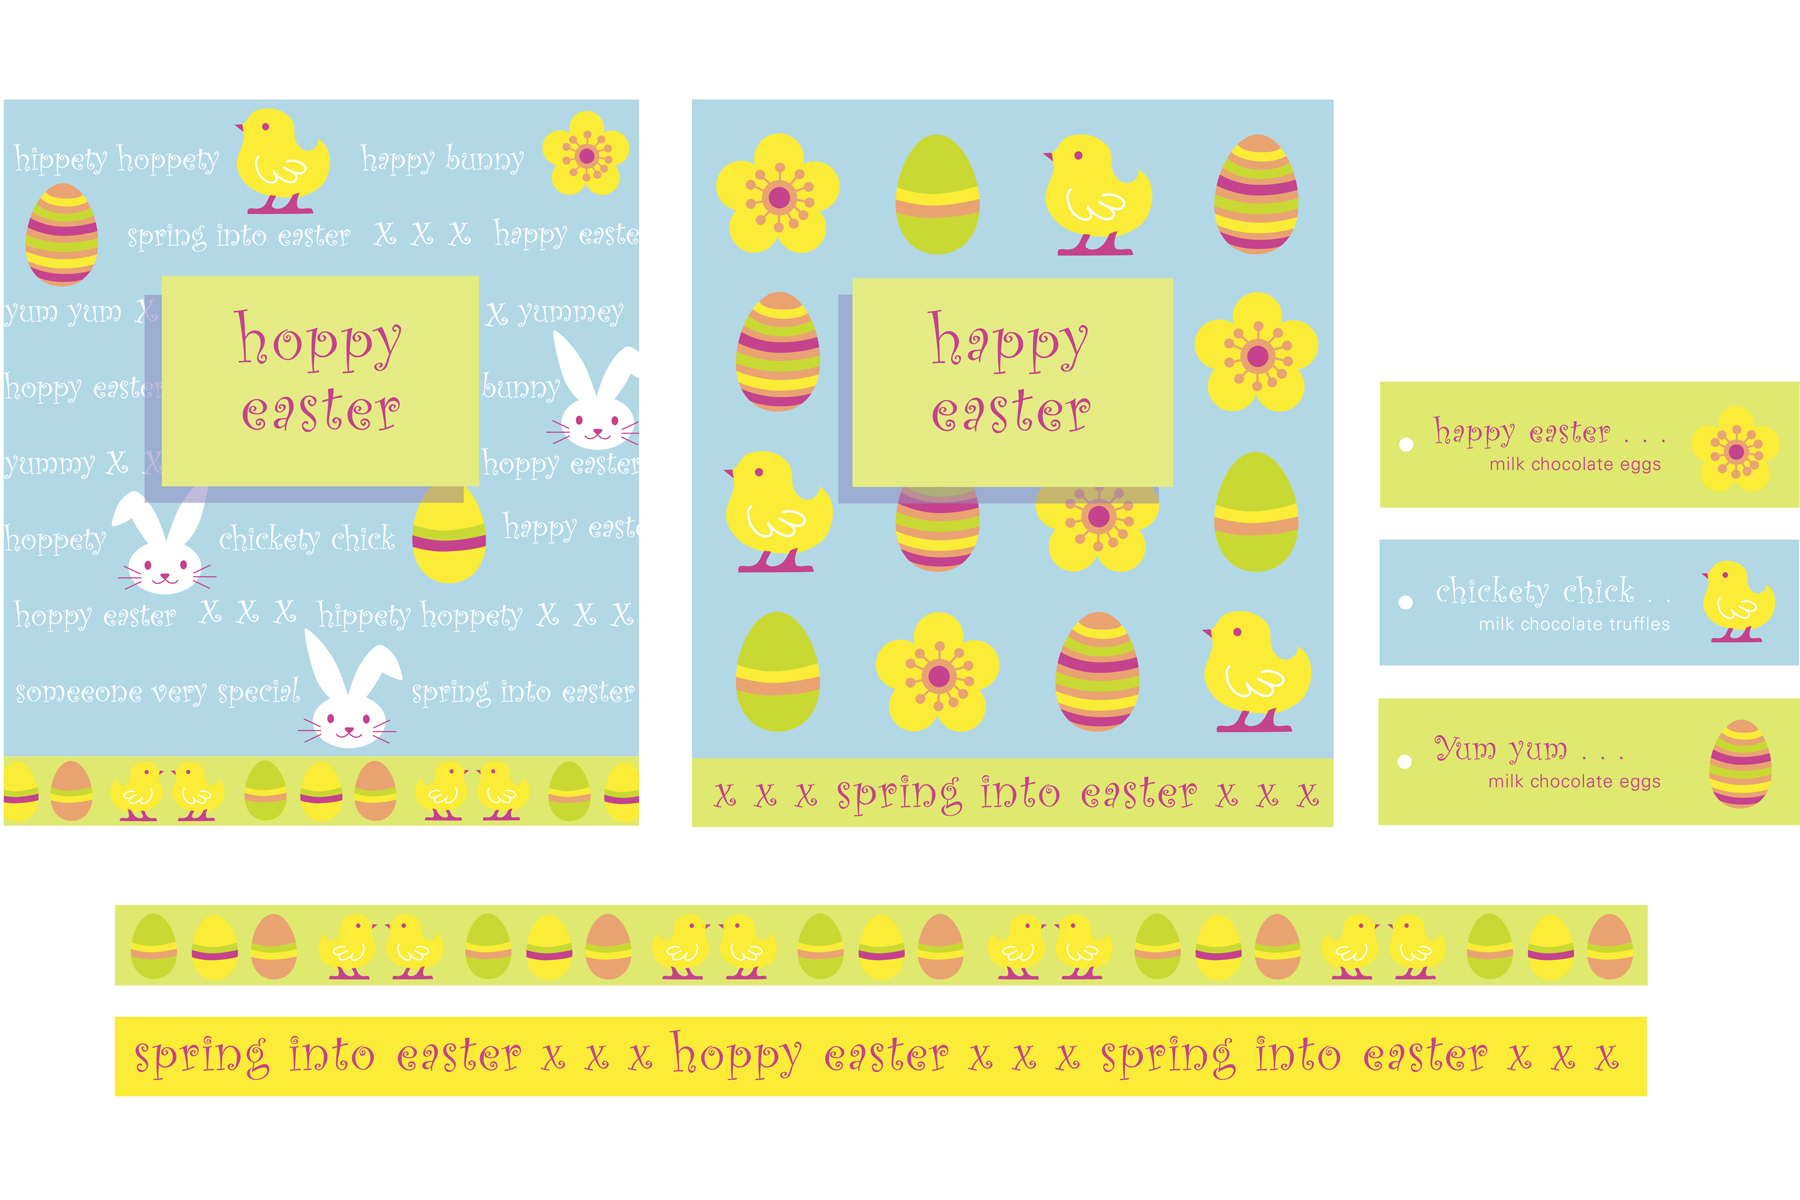 Seasonal Easter graphics for a range of confectionery and promotional decor.